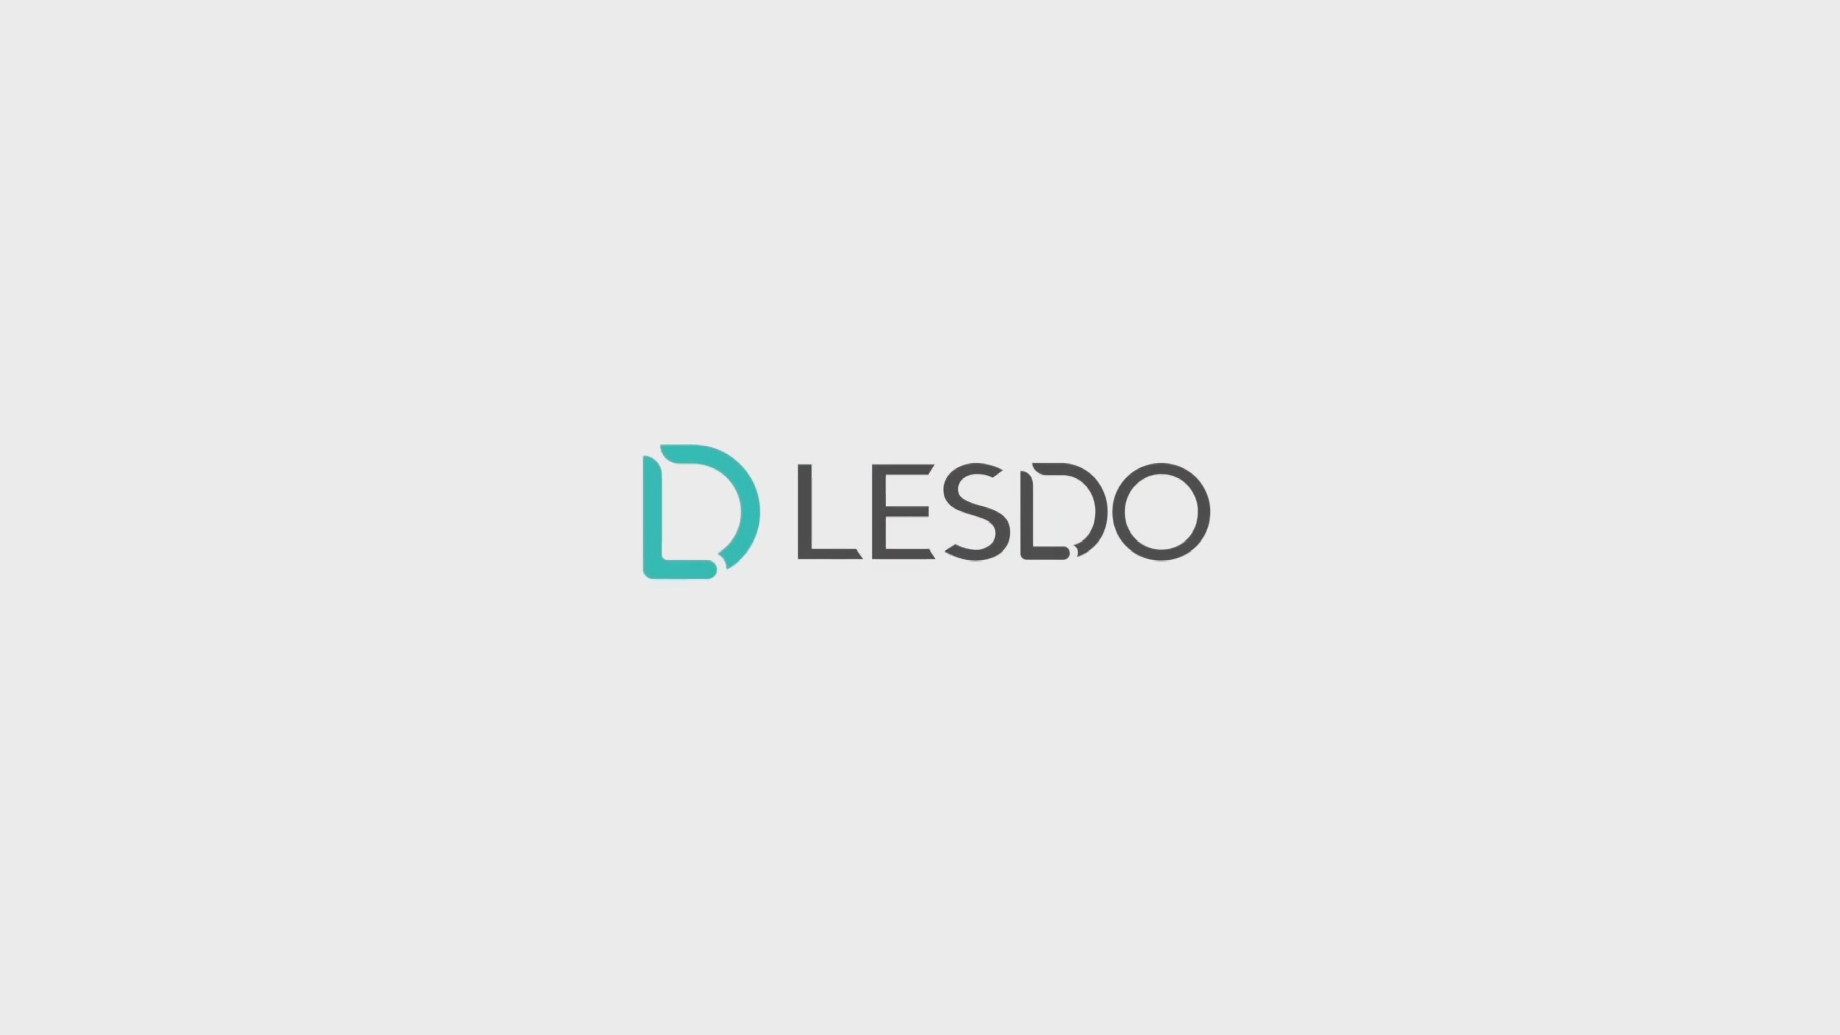 LESDO Releases 'Catch' to Help Users Create Successful Icebreakers